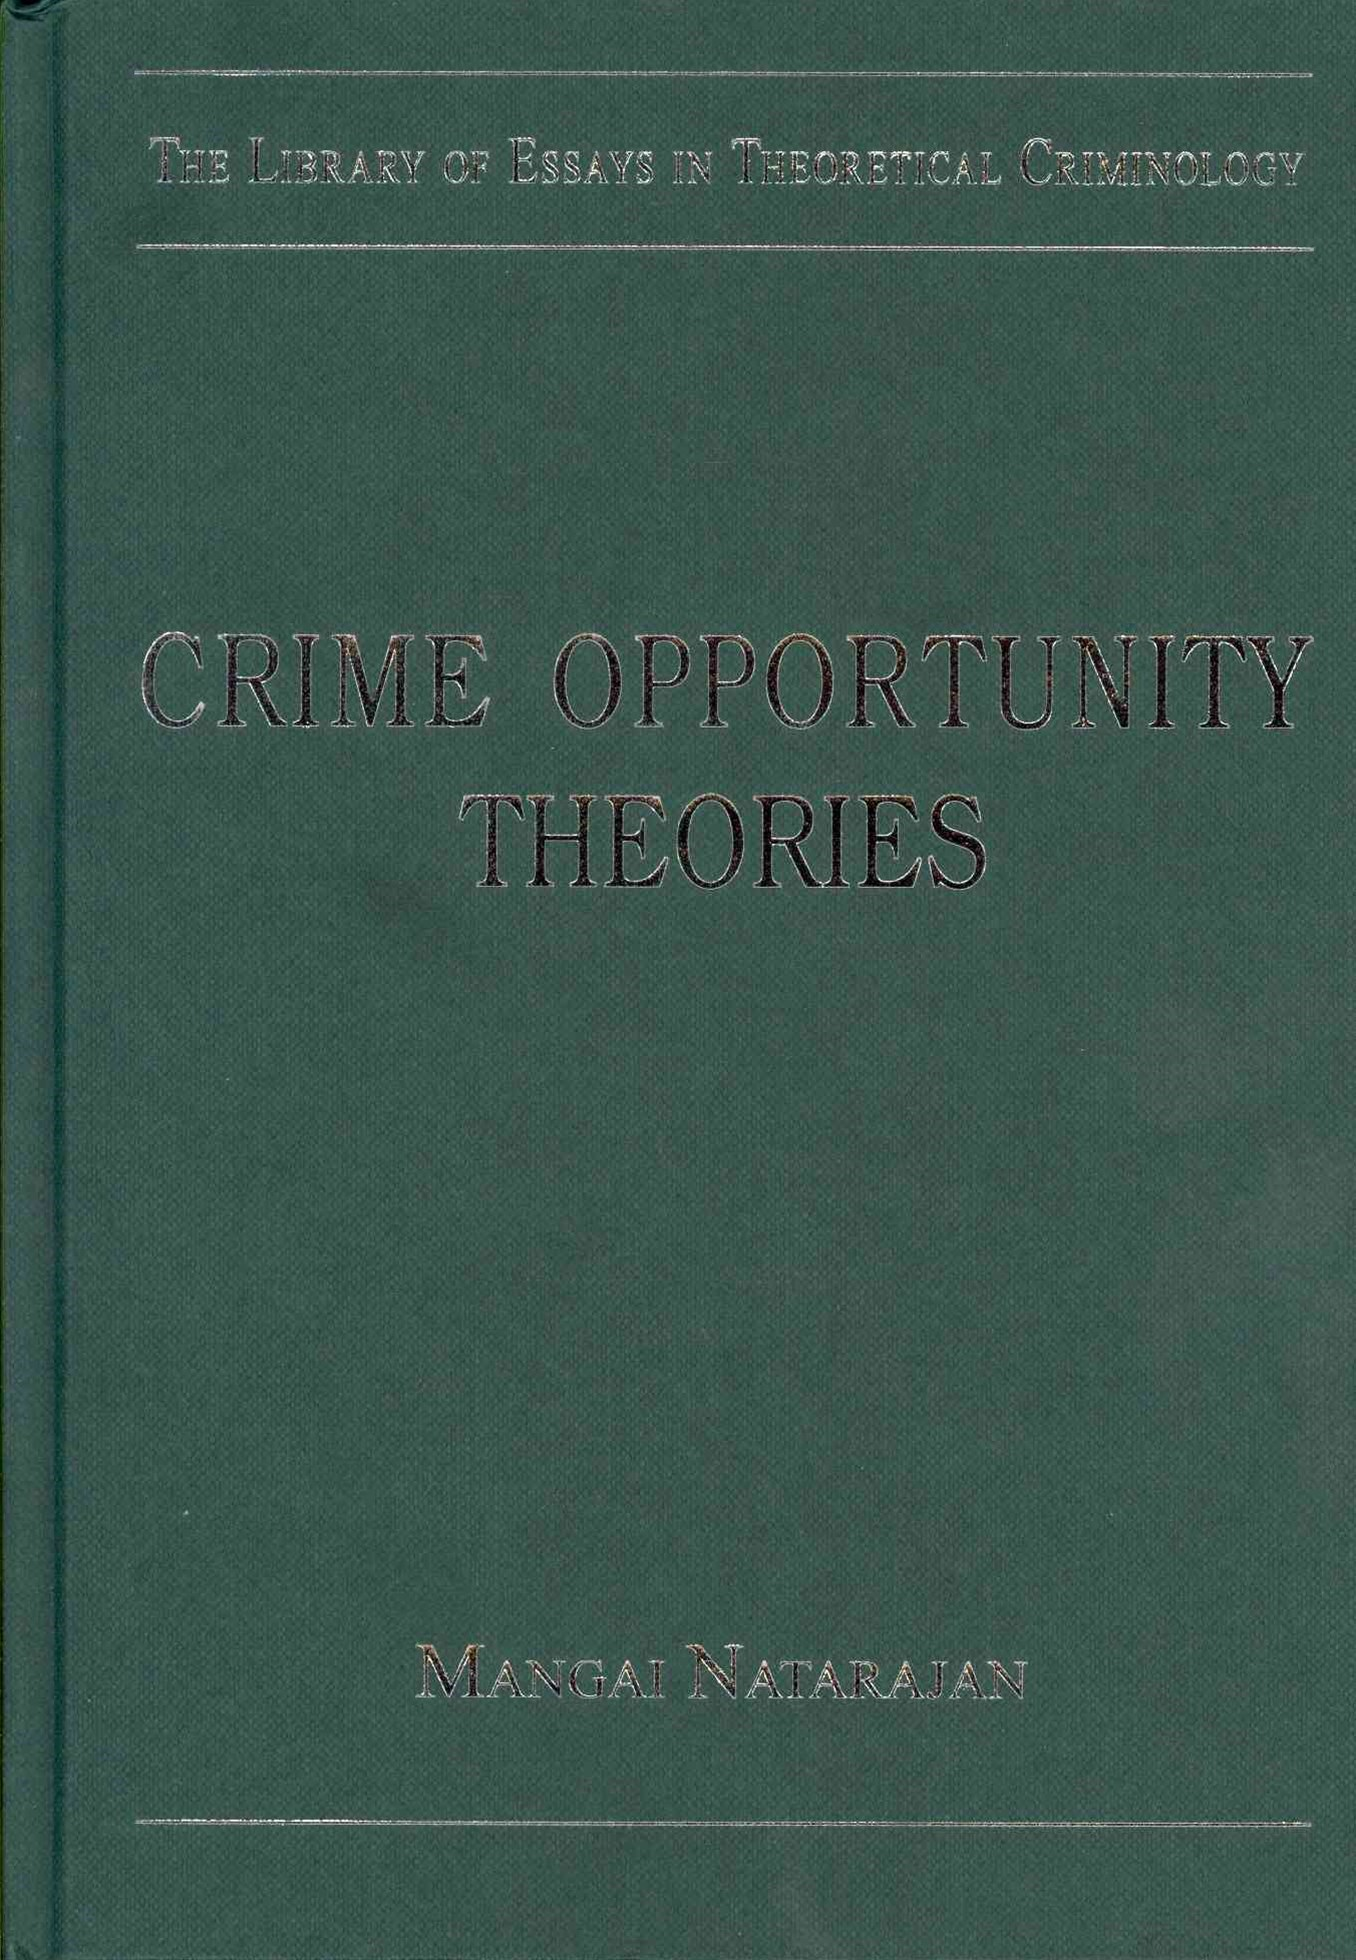 Crime Opportunity Theories